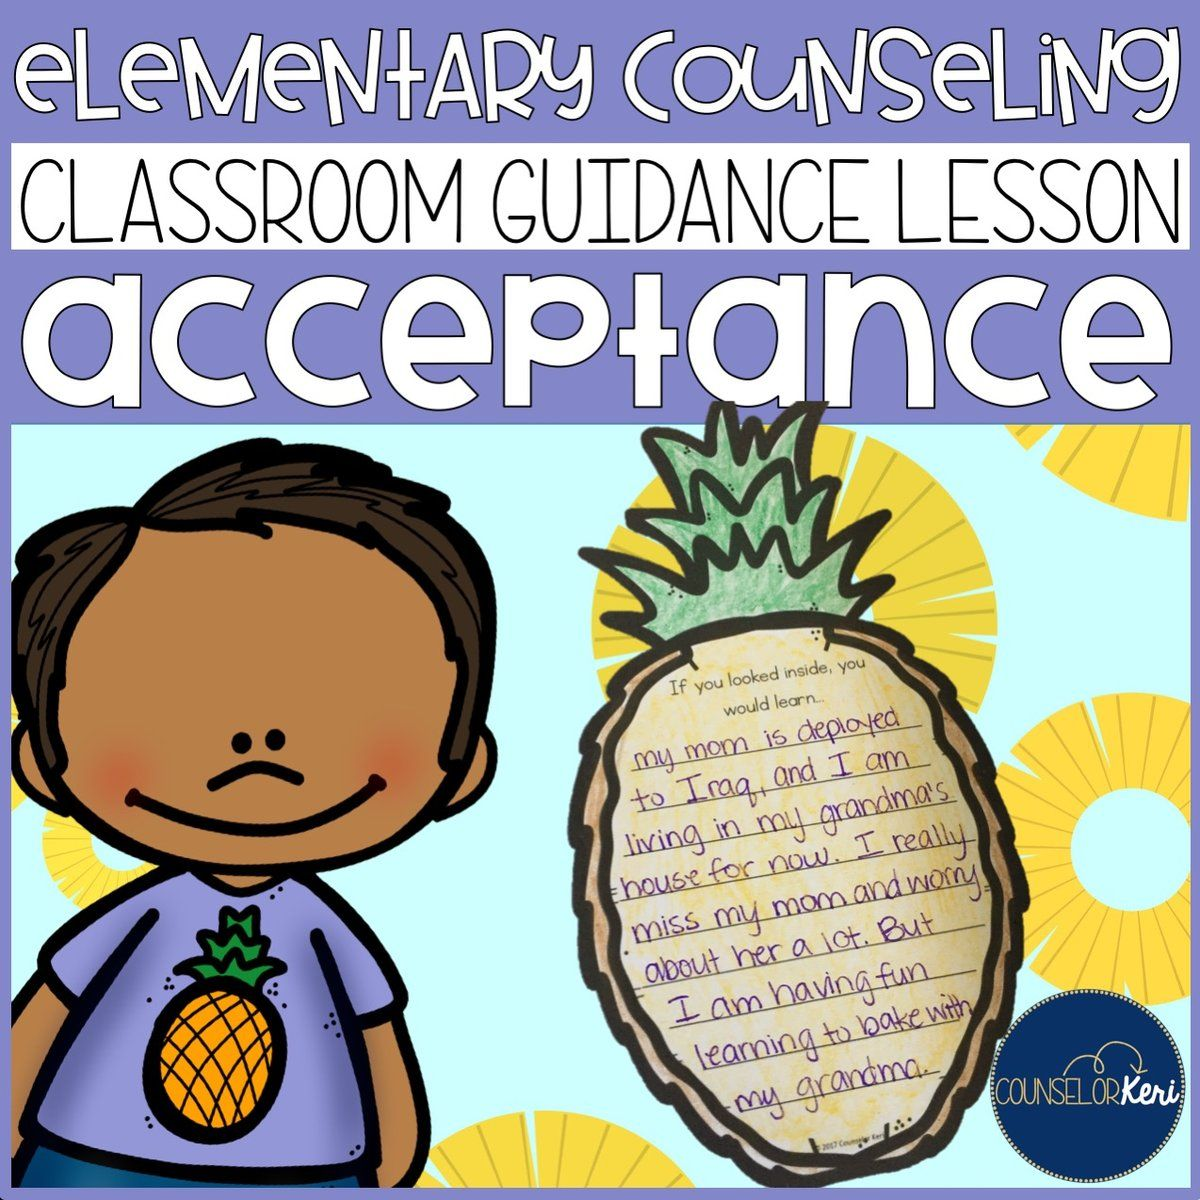 Acceptance Classroom Guidance Lesson For Elementary School